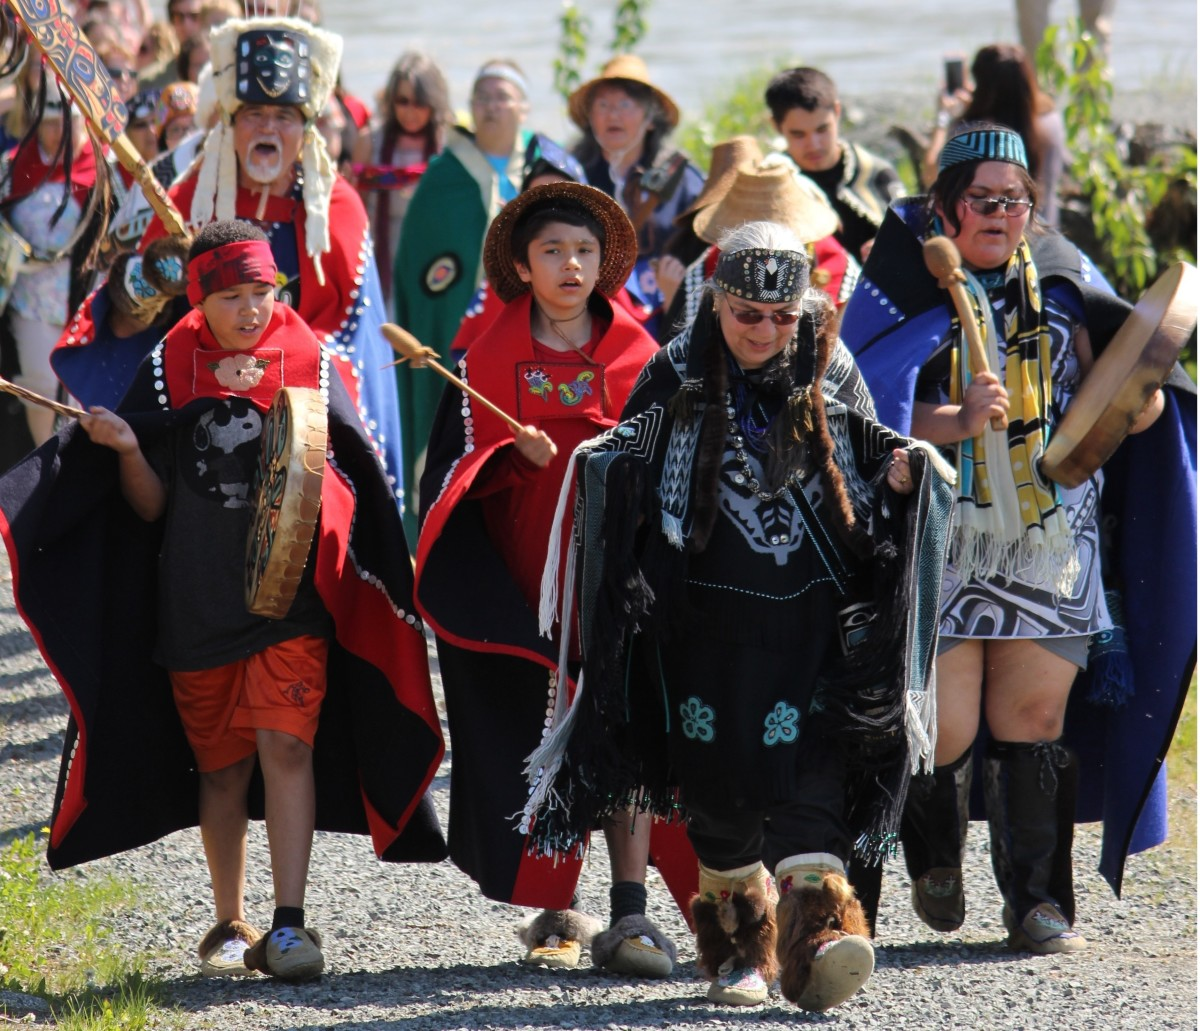 """Tlingit Community members in Klukwan, Alaska, march in 2015 in honor of Lani Hotch, a weaver and citizen of the Chilkat Indian Village in Haines, Alaska. Hotch was named a First Peoples Fund Community Spirit Award honoree. """"A truth that's unknown to most Americans is that art and culture are and always have been a central force in tribal communities and economies,"""" said First Peoples Fund President Lori Pourier. (Photo courtesy of First Peoples Fund)"""